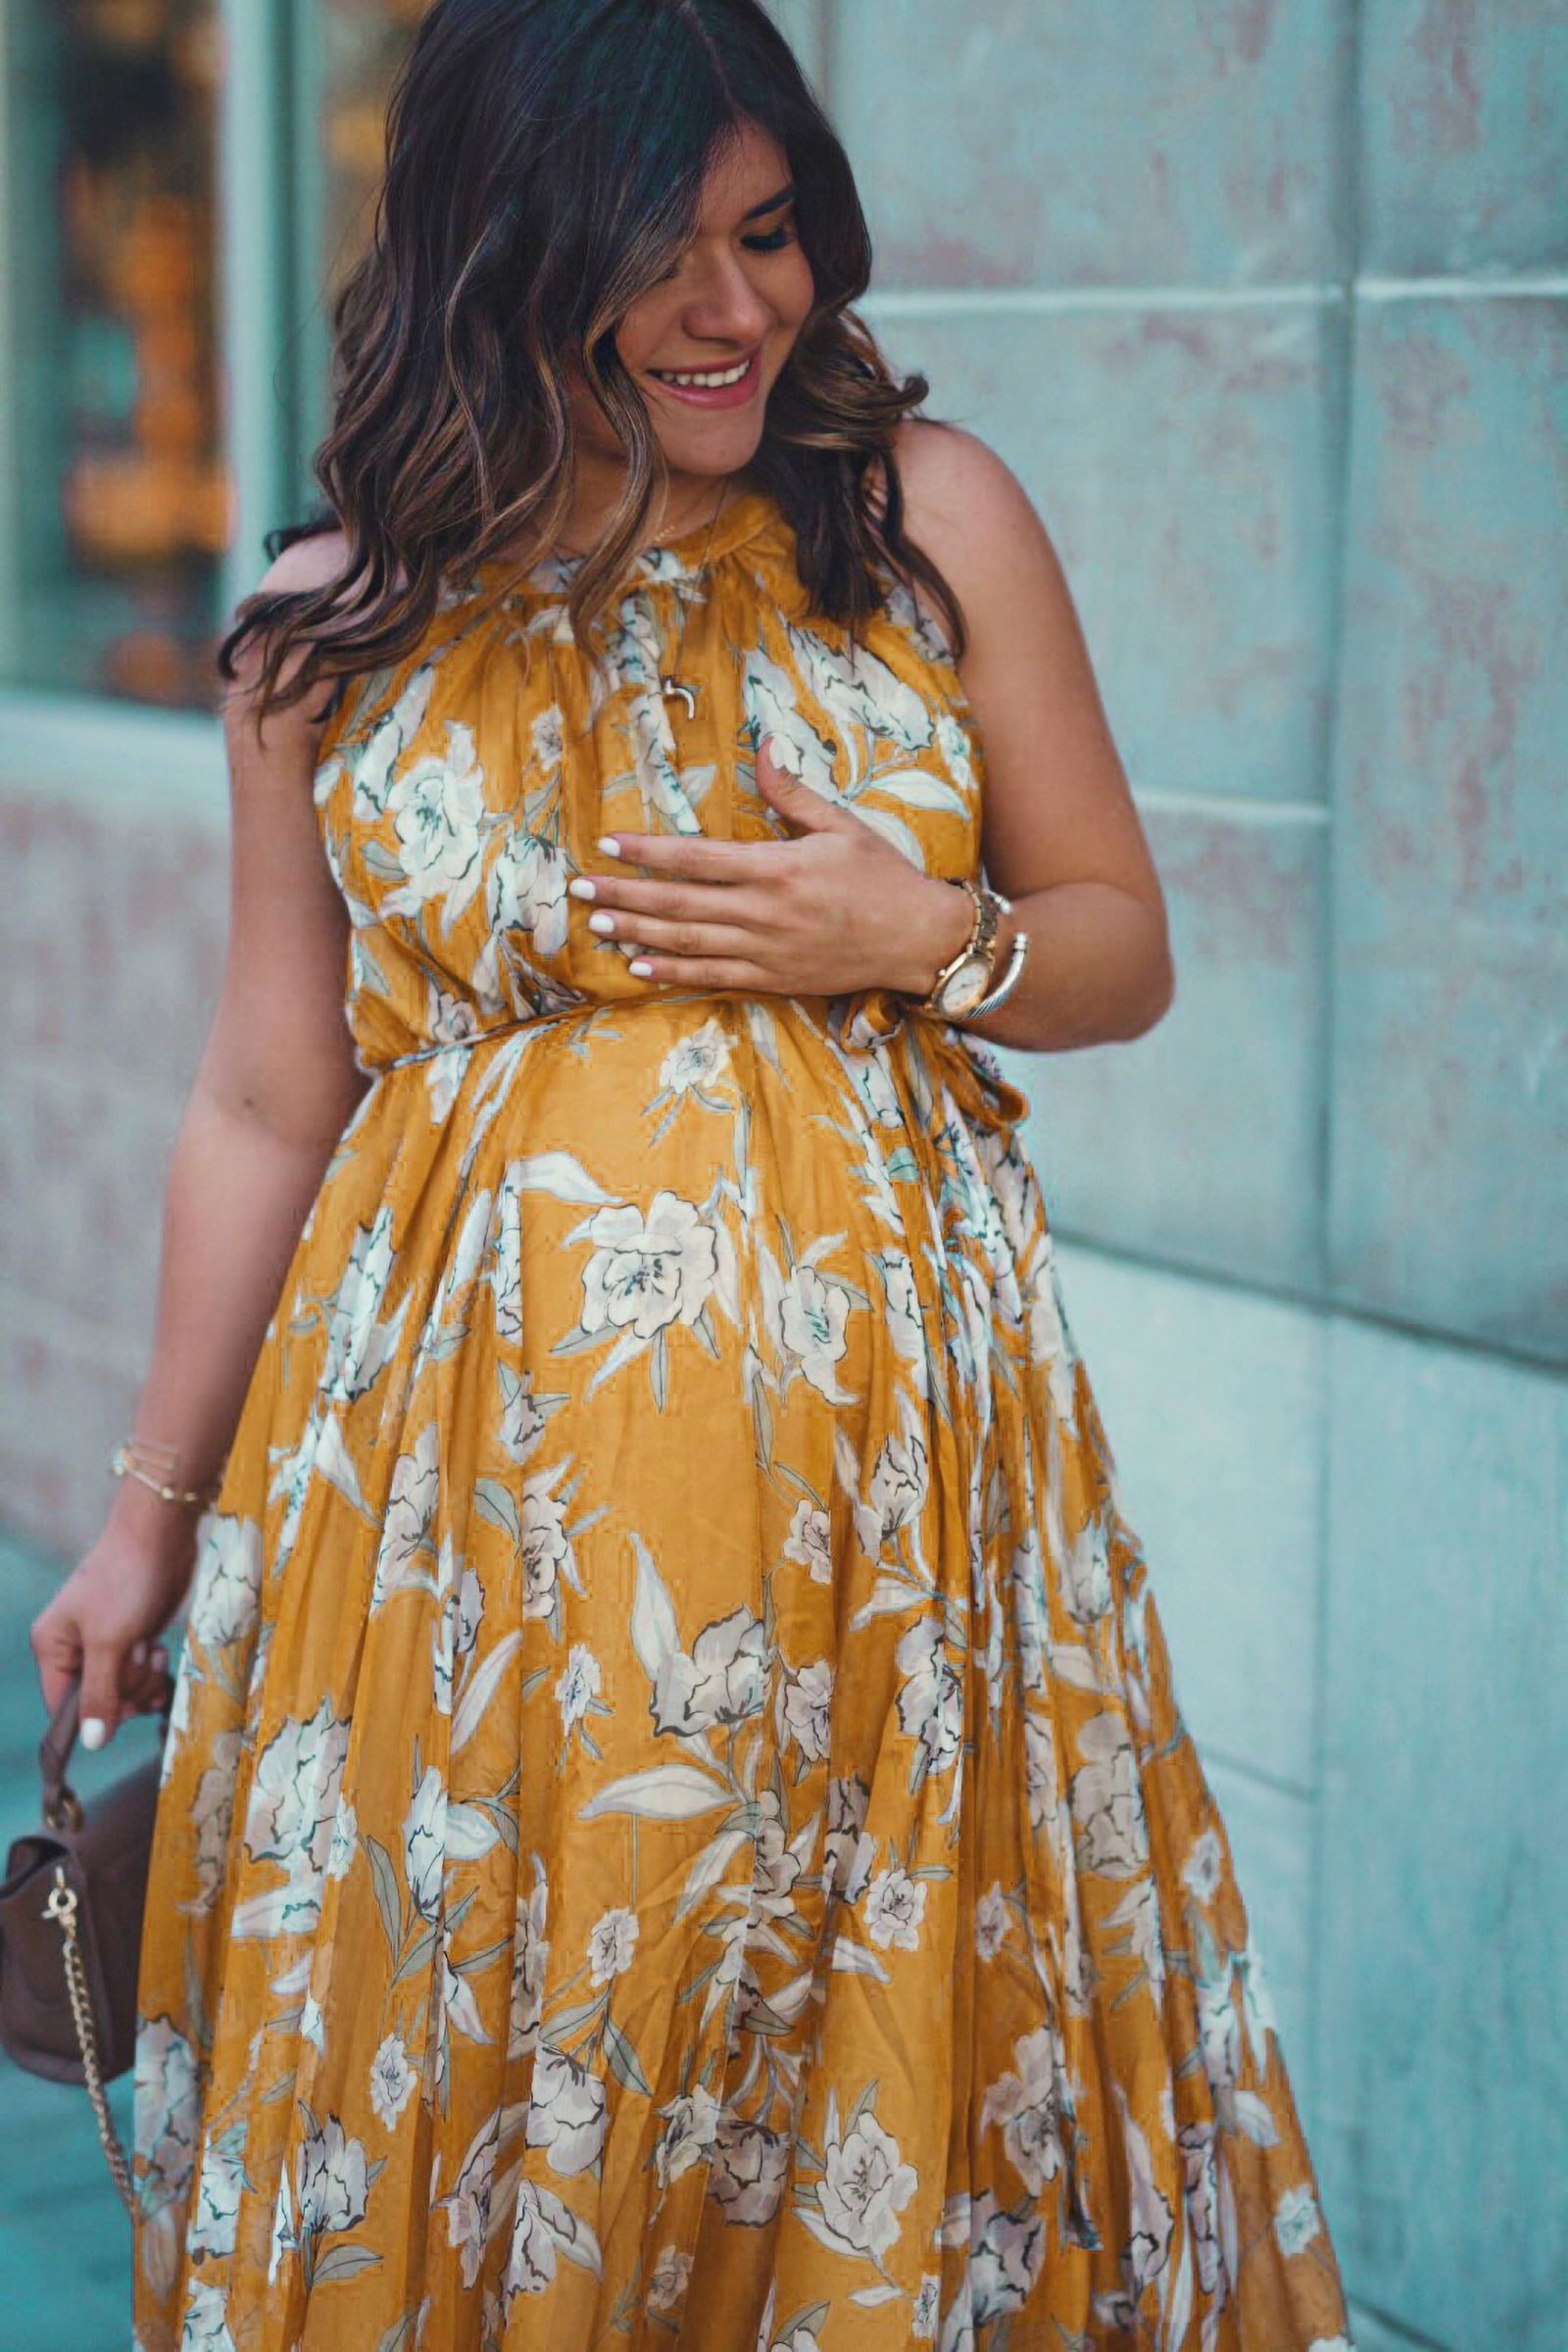 The Floral Dress You Need To Spice Up Your Summer Wardrobe Chic Talk Spring Maternity Outfits Maternity Dresses Spring Stylish Maternity Outfits